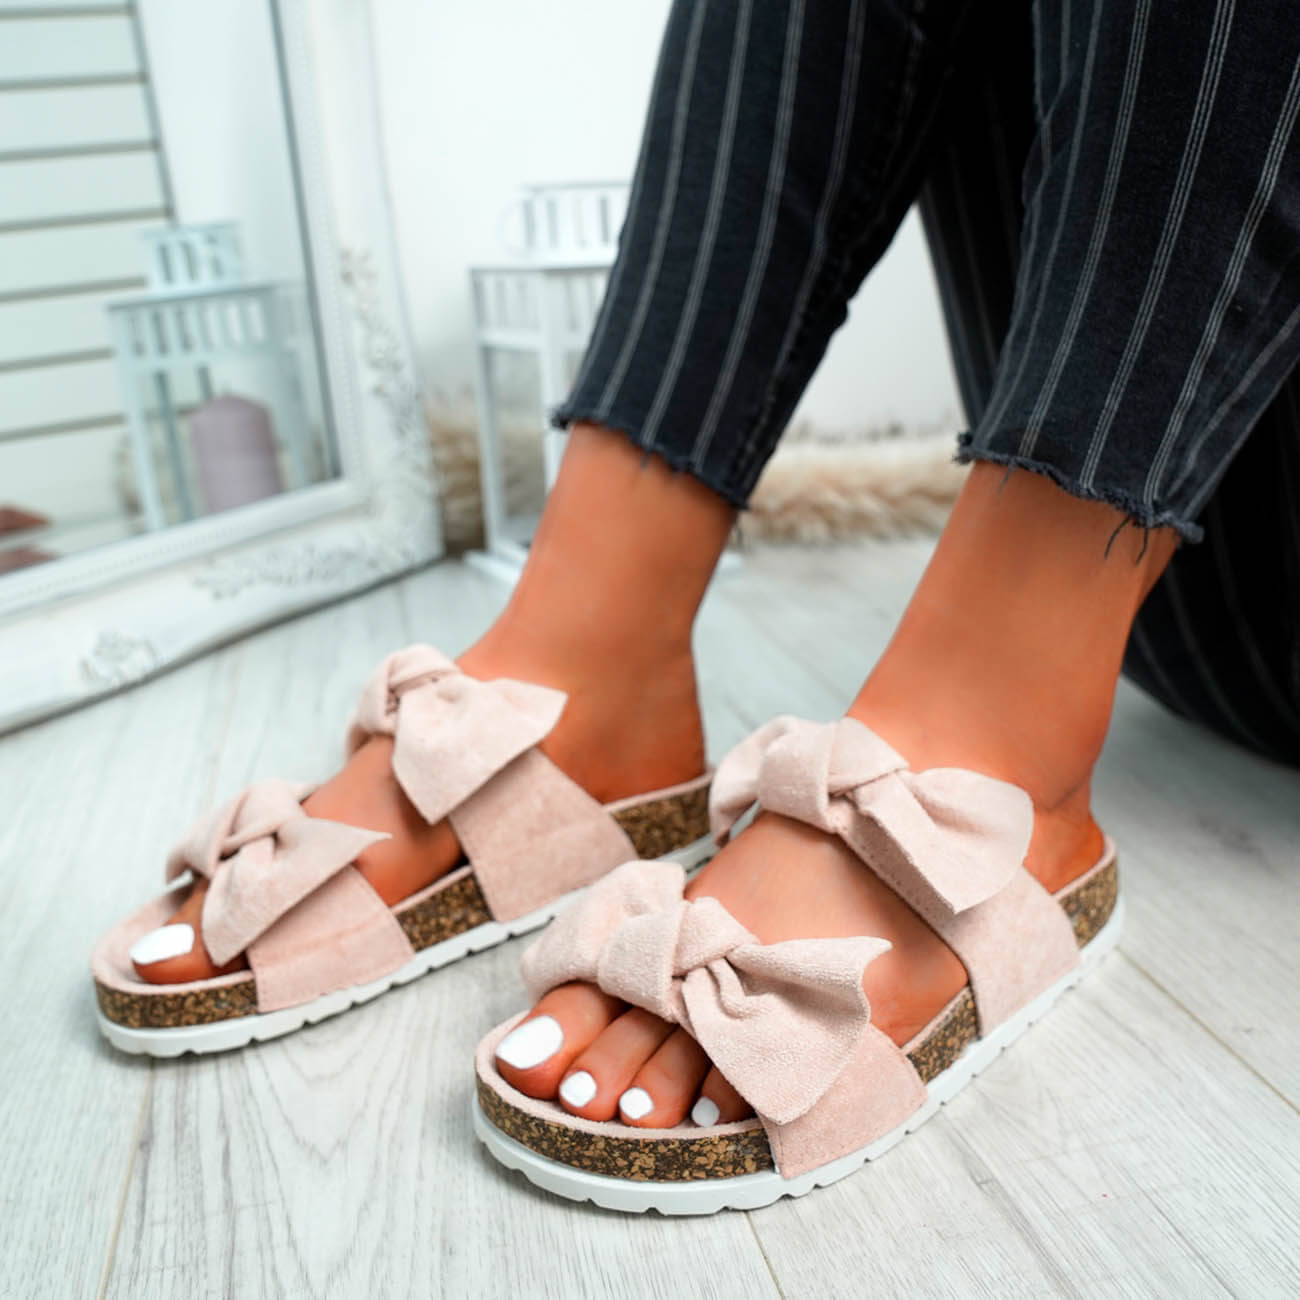 WOMENS-LADIES-PEEP-TOE-SLIP-ON-DOUBLE-BOW-FLAT-SANDALS-PARTY-CLUB-SUMMER-SHOES thumbnail 39